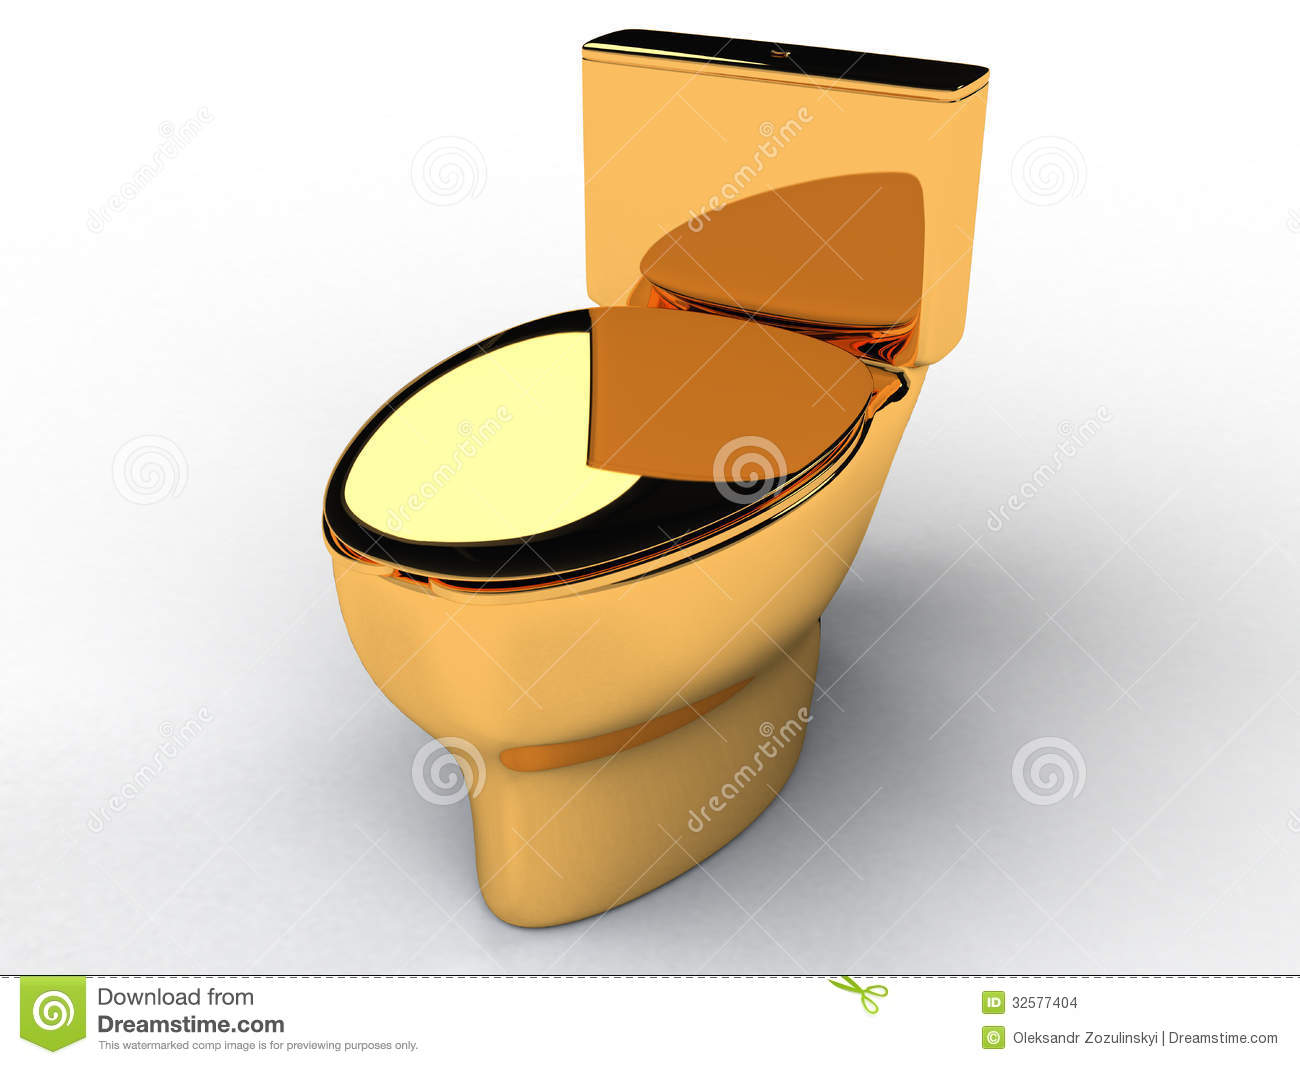 how to change toilet bowl